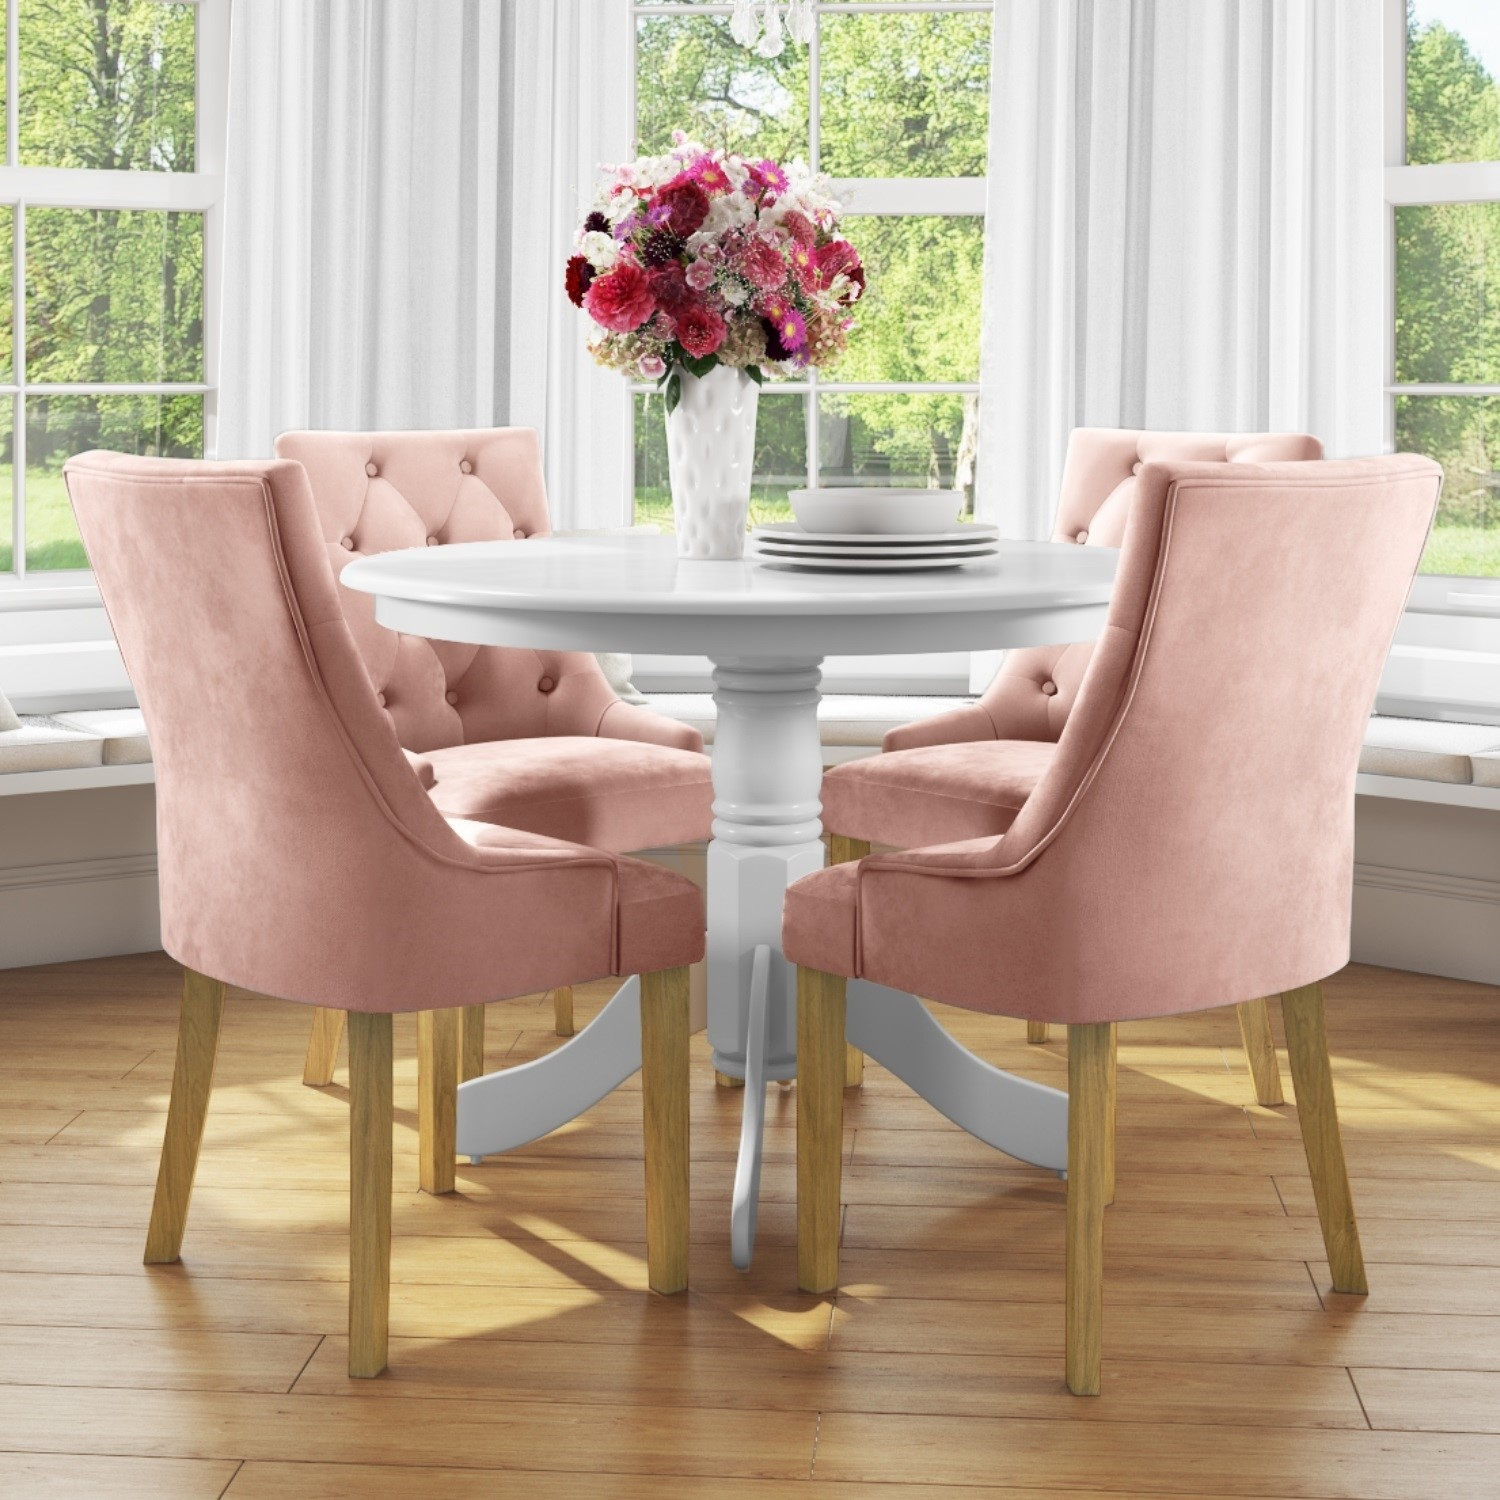 Small Round Dining Table In White With 4 Velvet Chairs In Pink Rhode Island Kaylee Furniture123